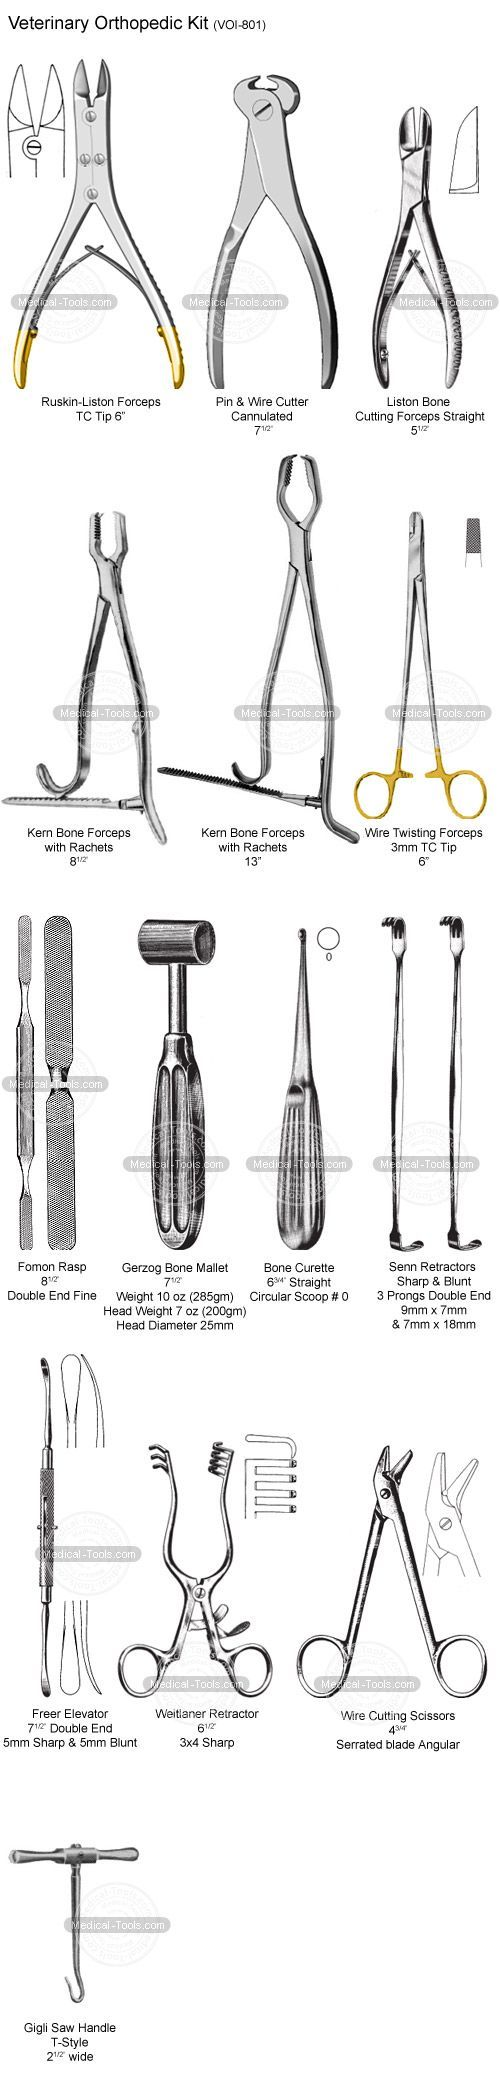 363 best animal science images on pinterest veterinary medicine veterinary orthopedic kit veterinary instruments medical tools shop robcynllc Gallery